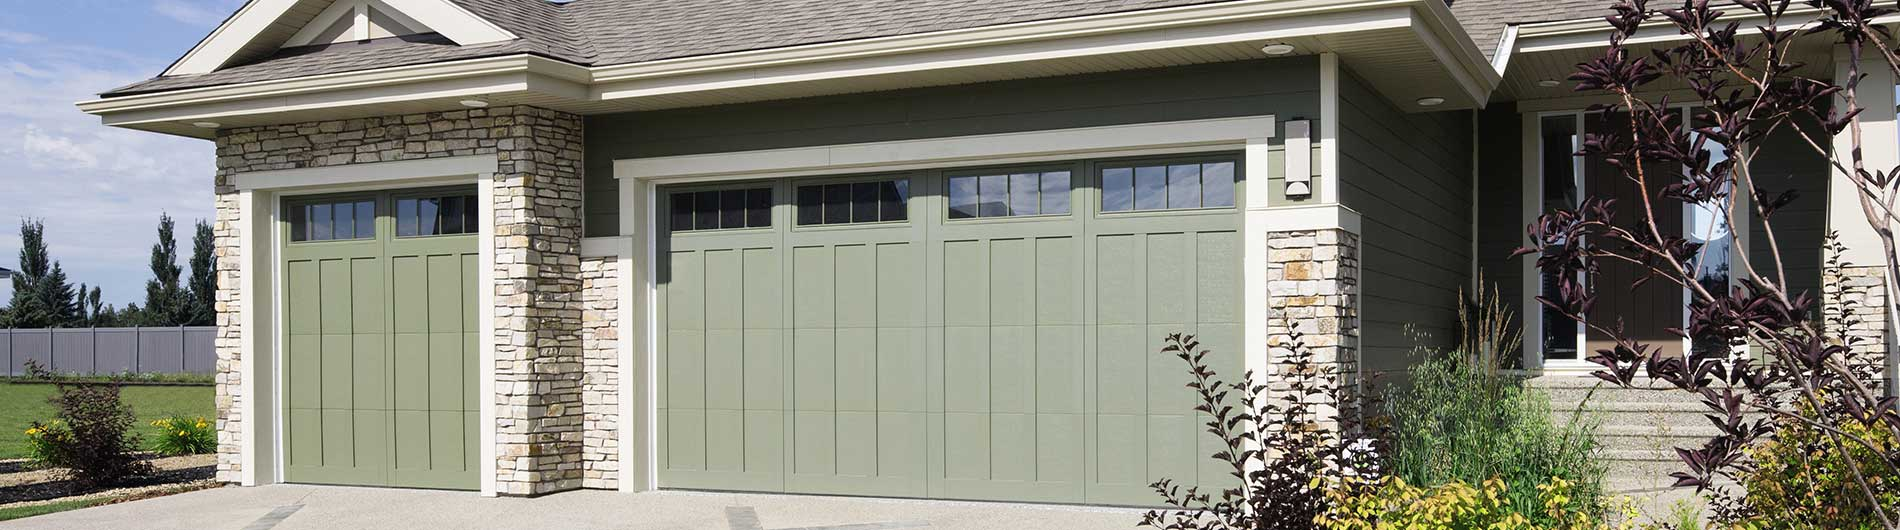 carriage house garage door